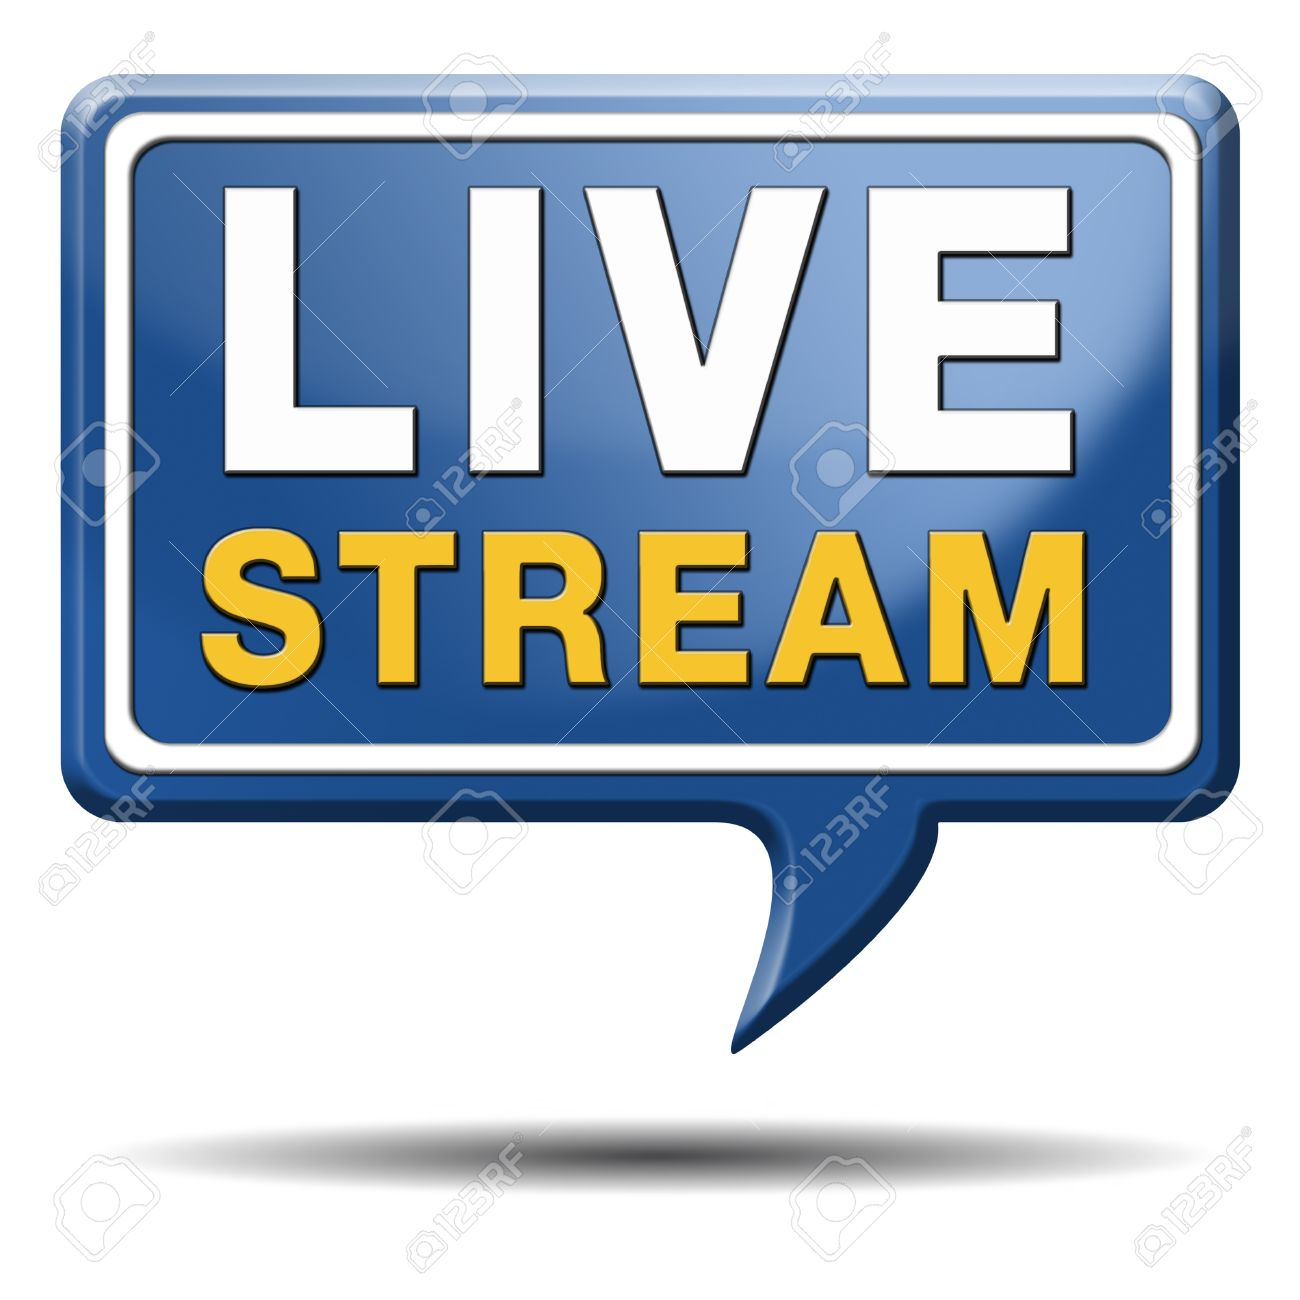 live stream tv music or video button icon or sign live on air broadcasting movie or radio program Stock Photo - 23236883